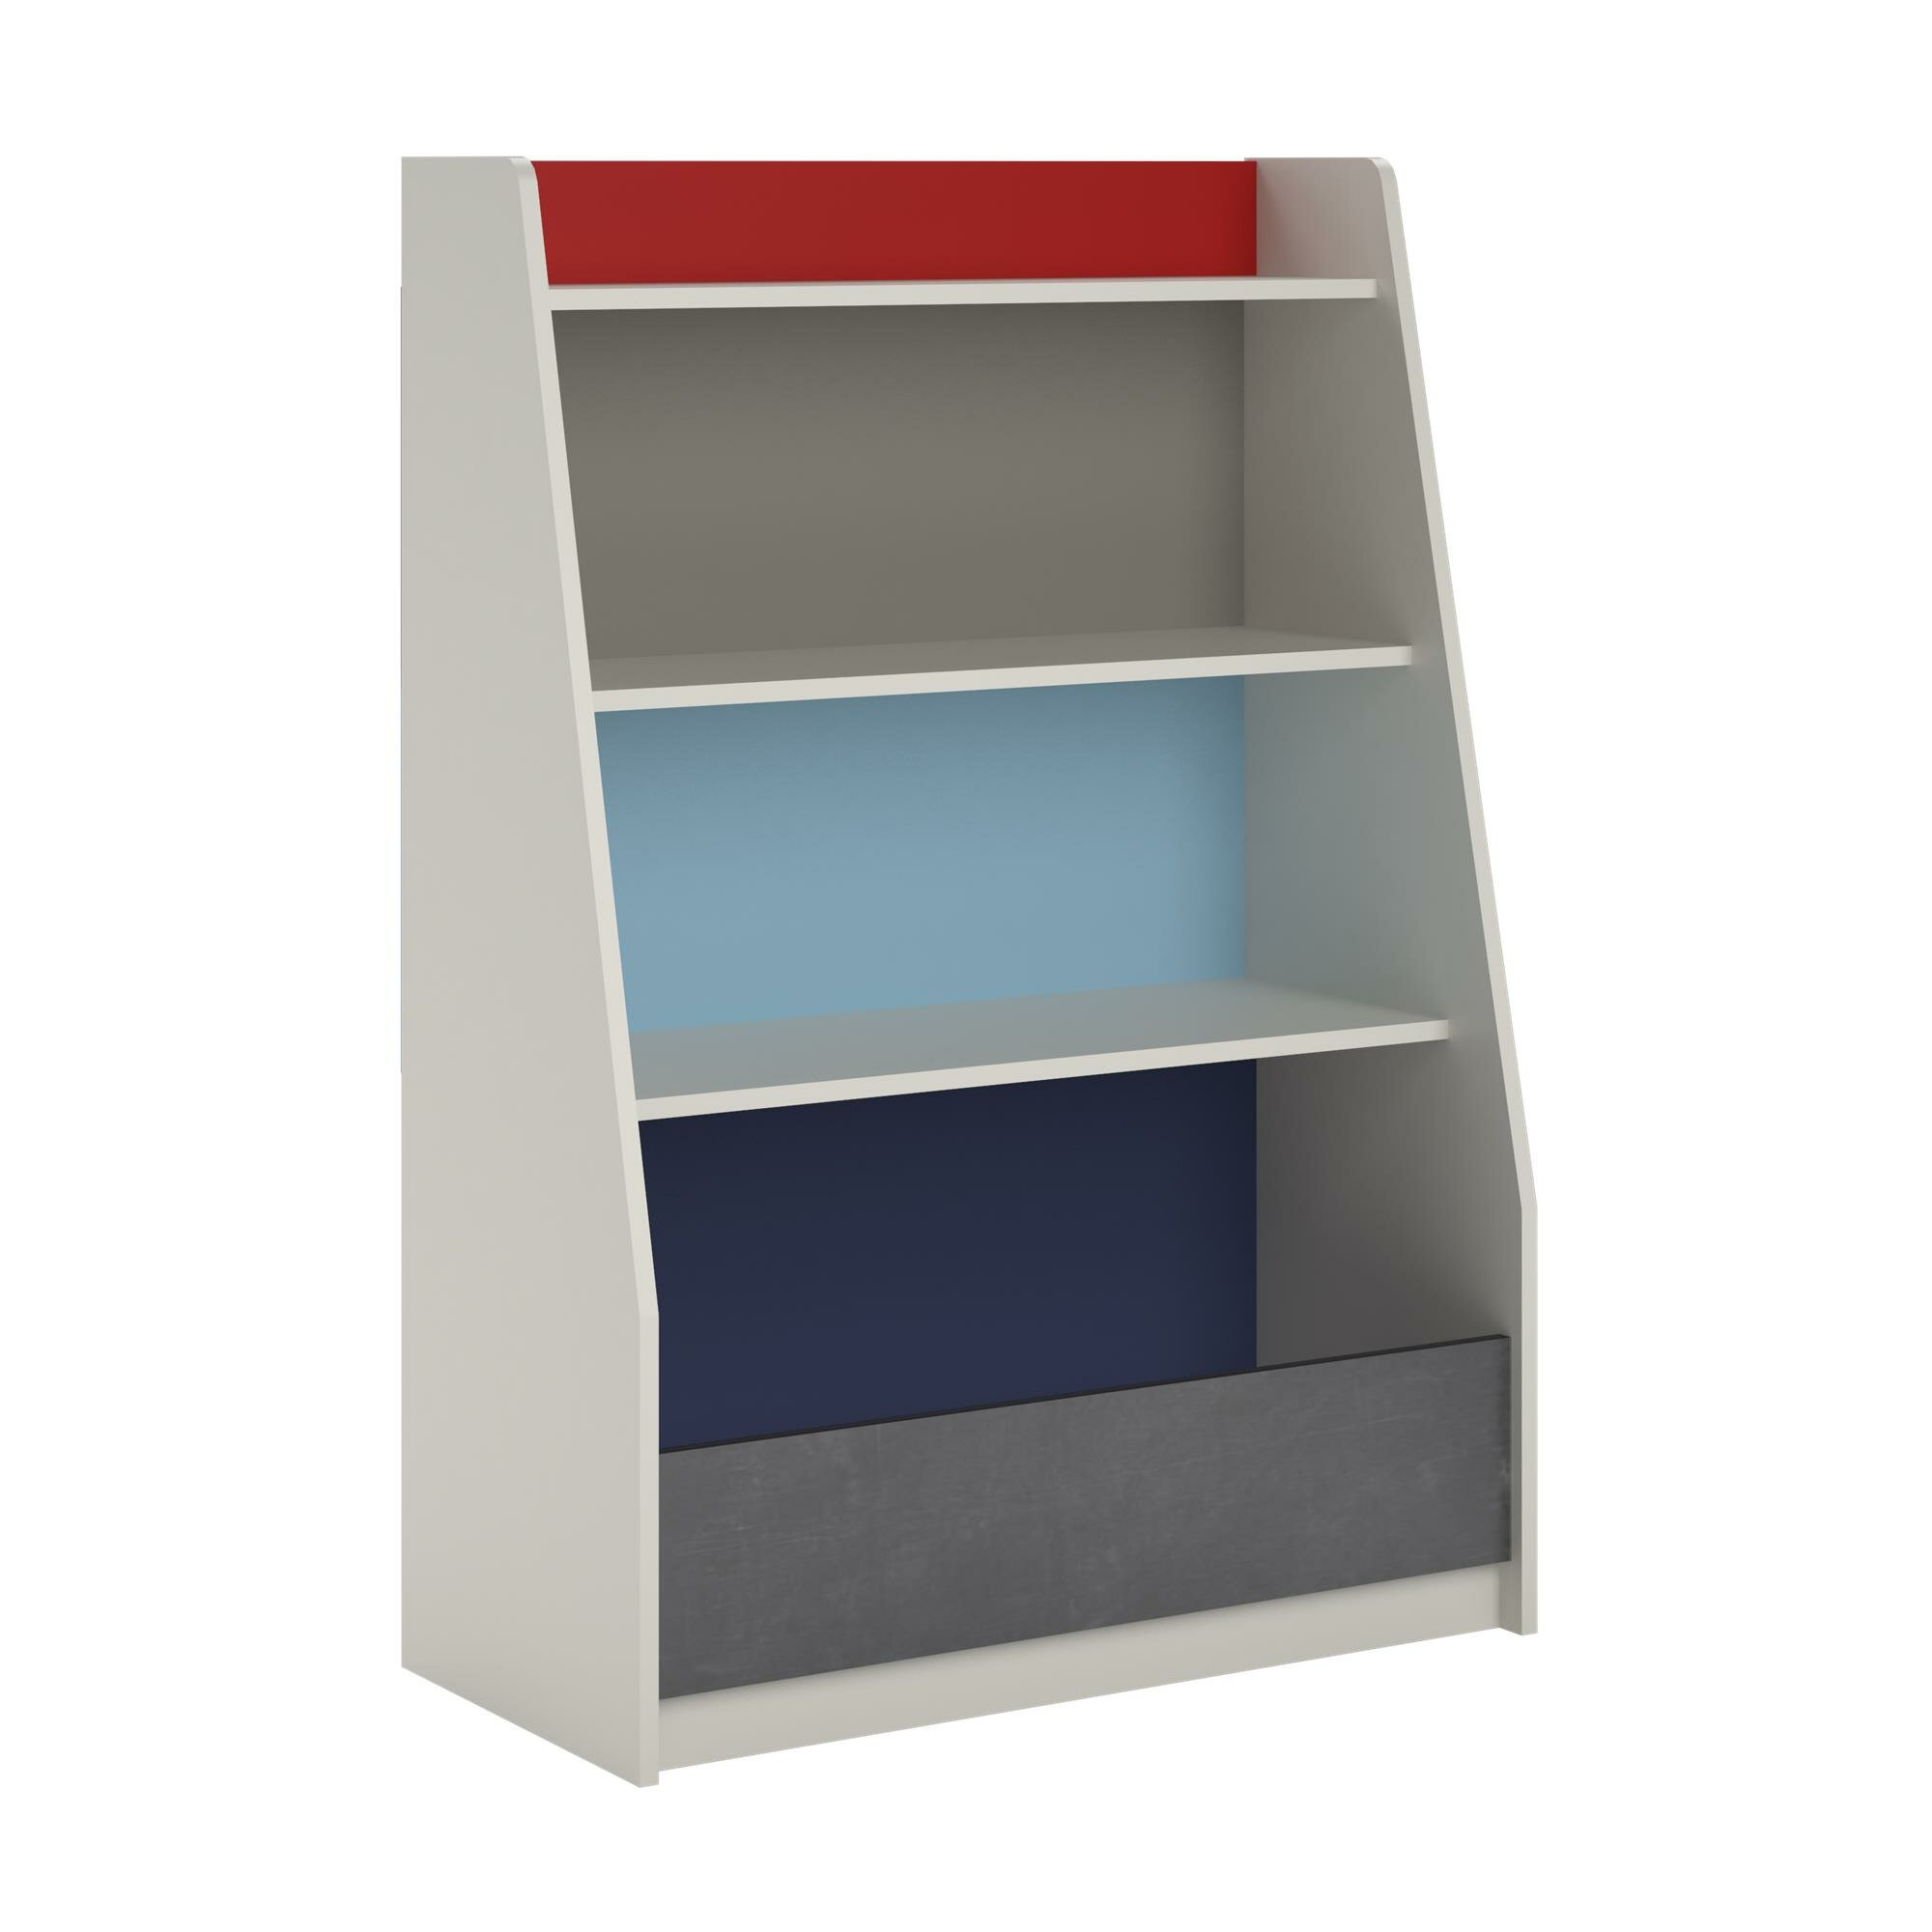 parsons home product free shipping garden hollow bookcase core bookcases today navy overstock ameriwood cube